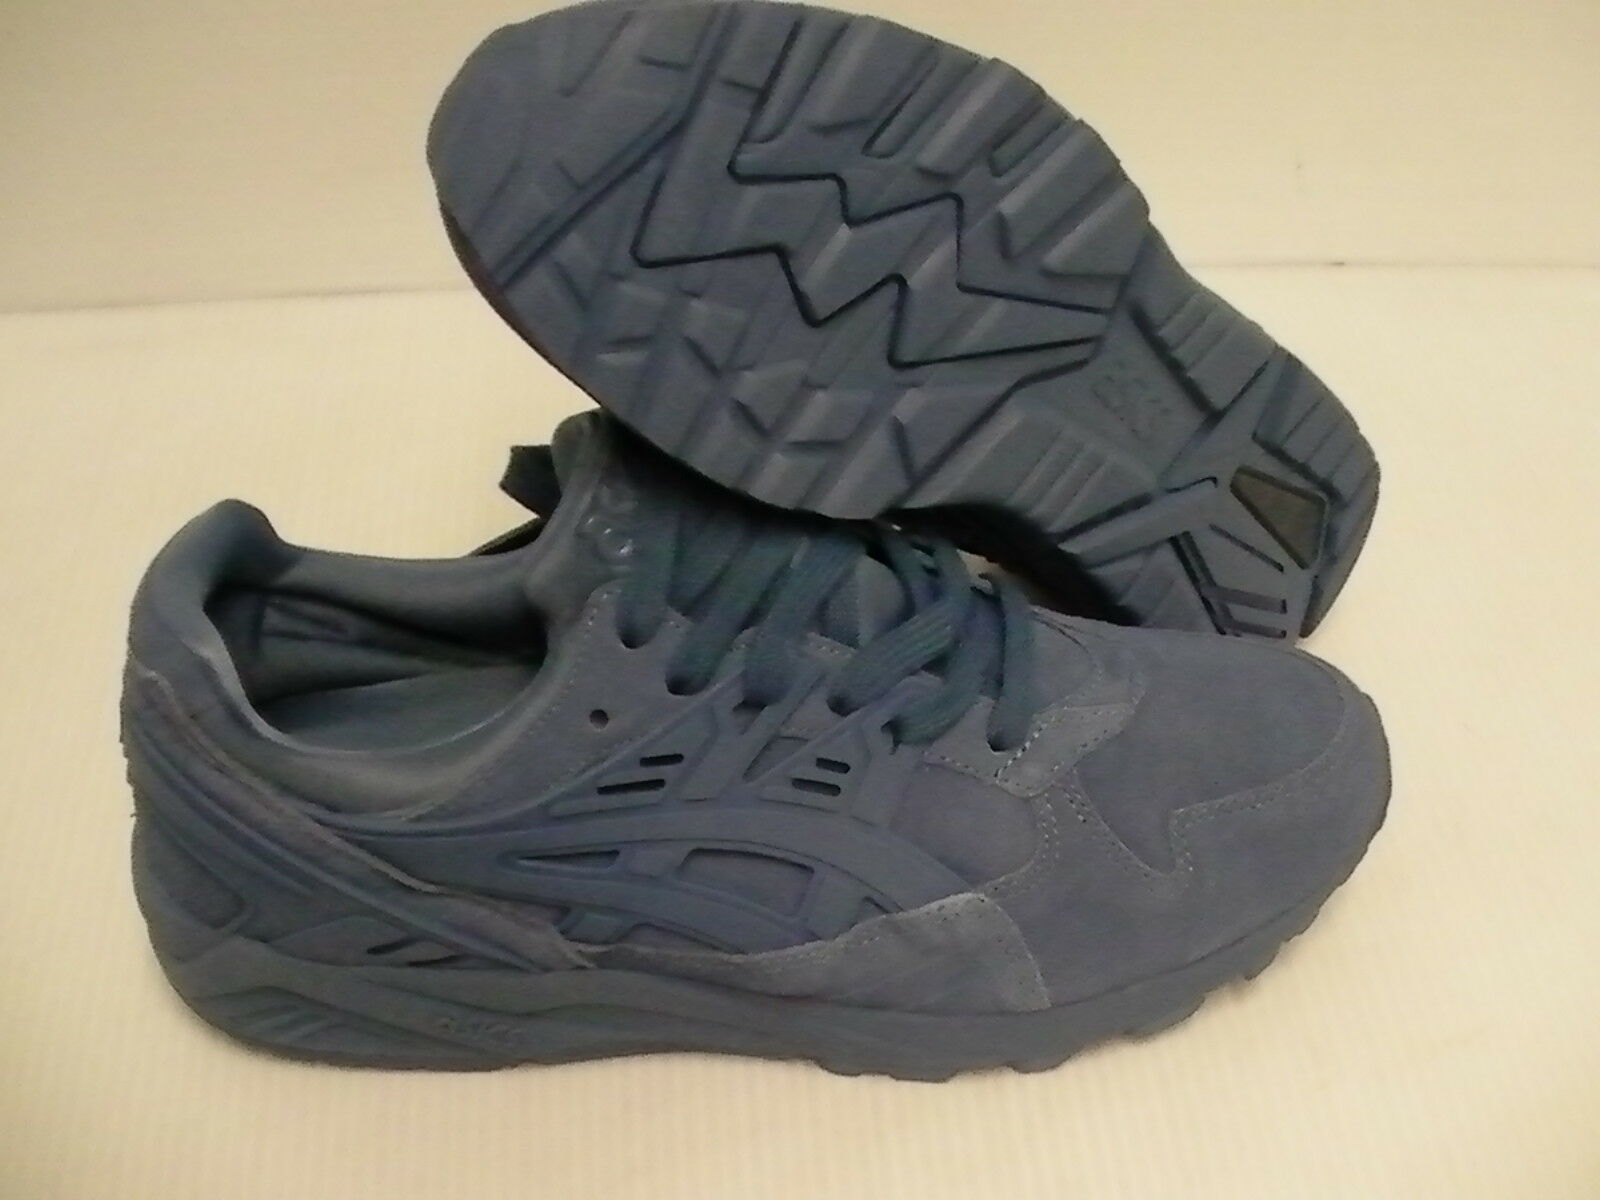 Asics Homme Gel Kayano Baskets Chaussures Course Pigeon Bleu Taille Taille Taille 12 Us | De La Mode  ad88e9